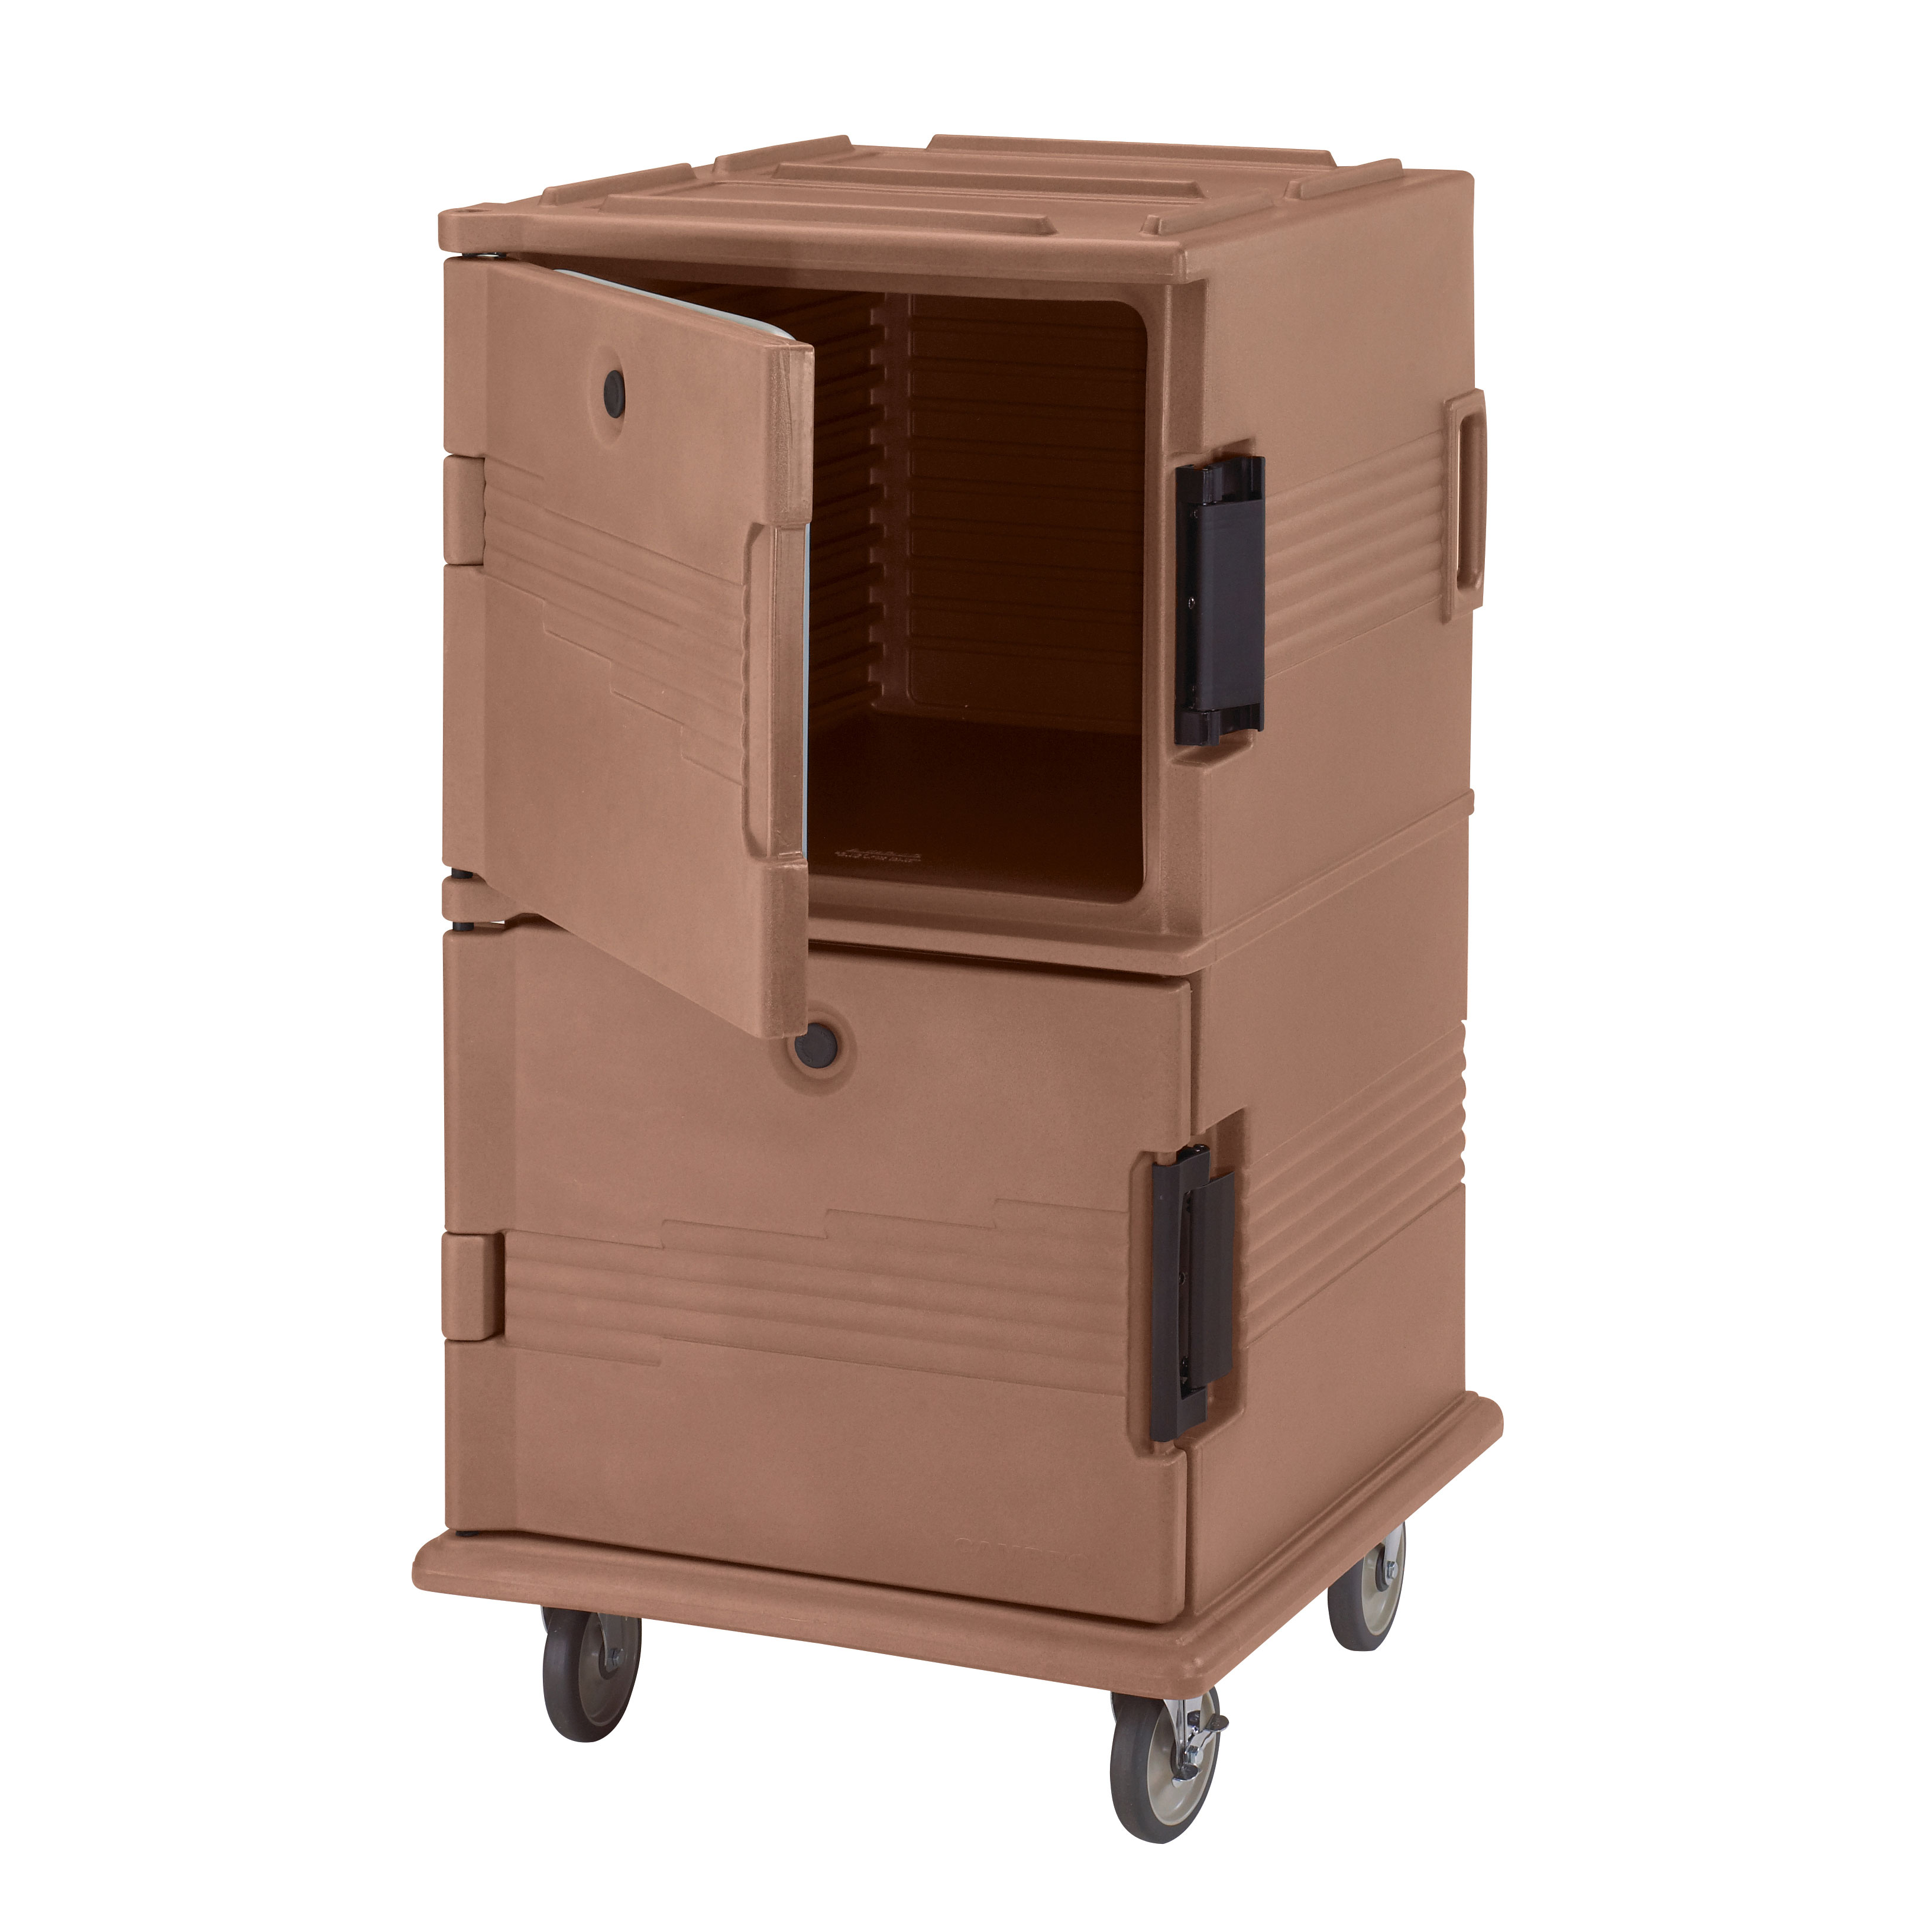 Cambro UPC1600HD157 proofing/holding cabinets